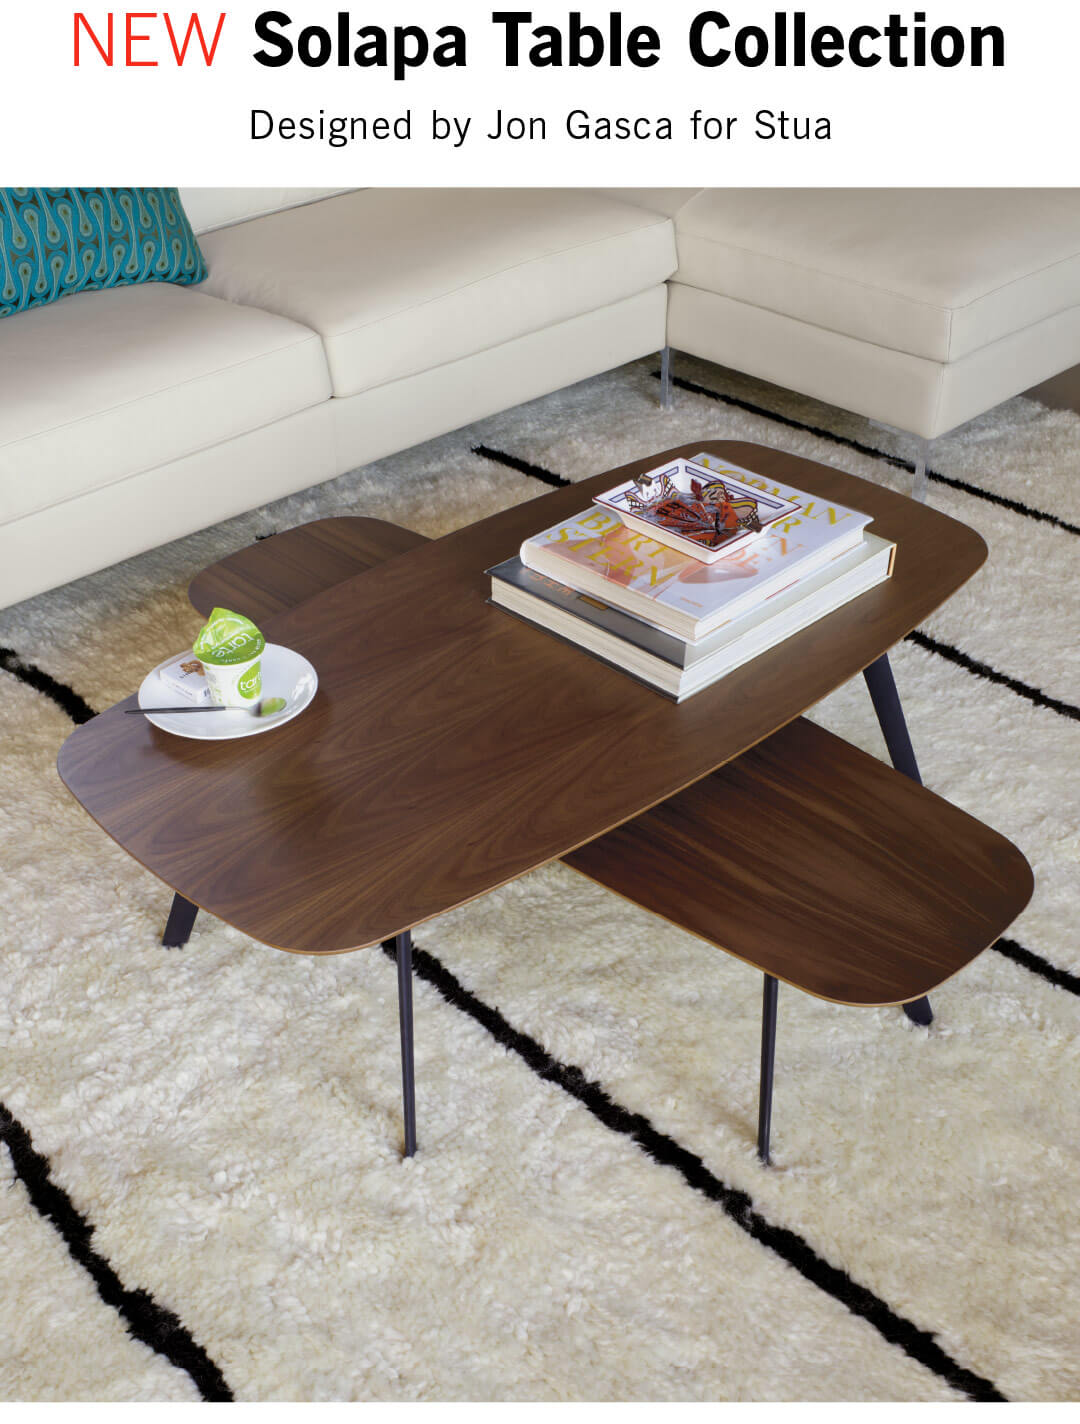 Solapa Table Collection